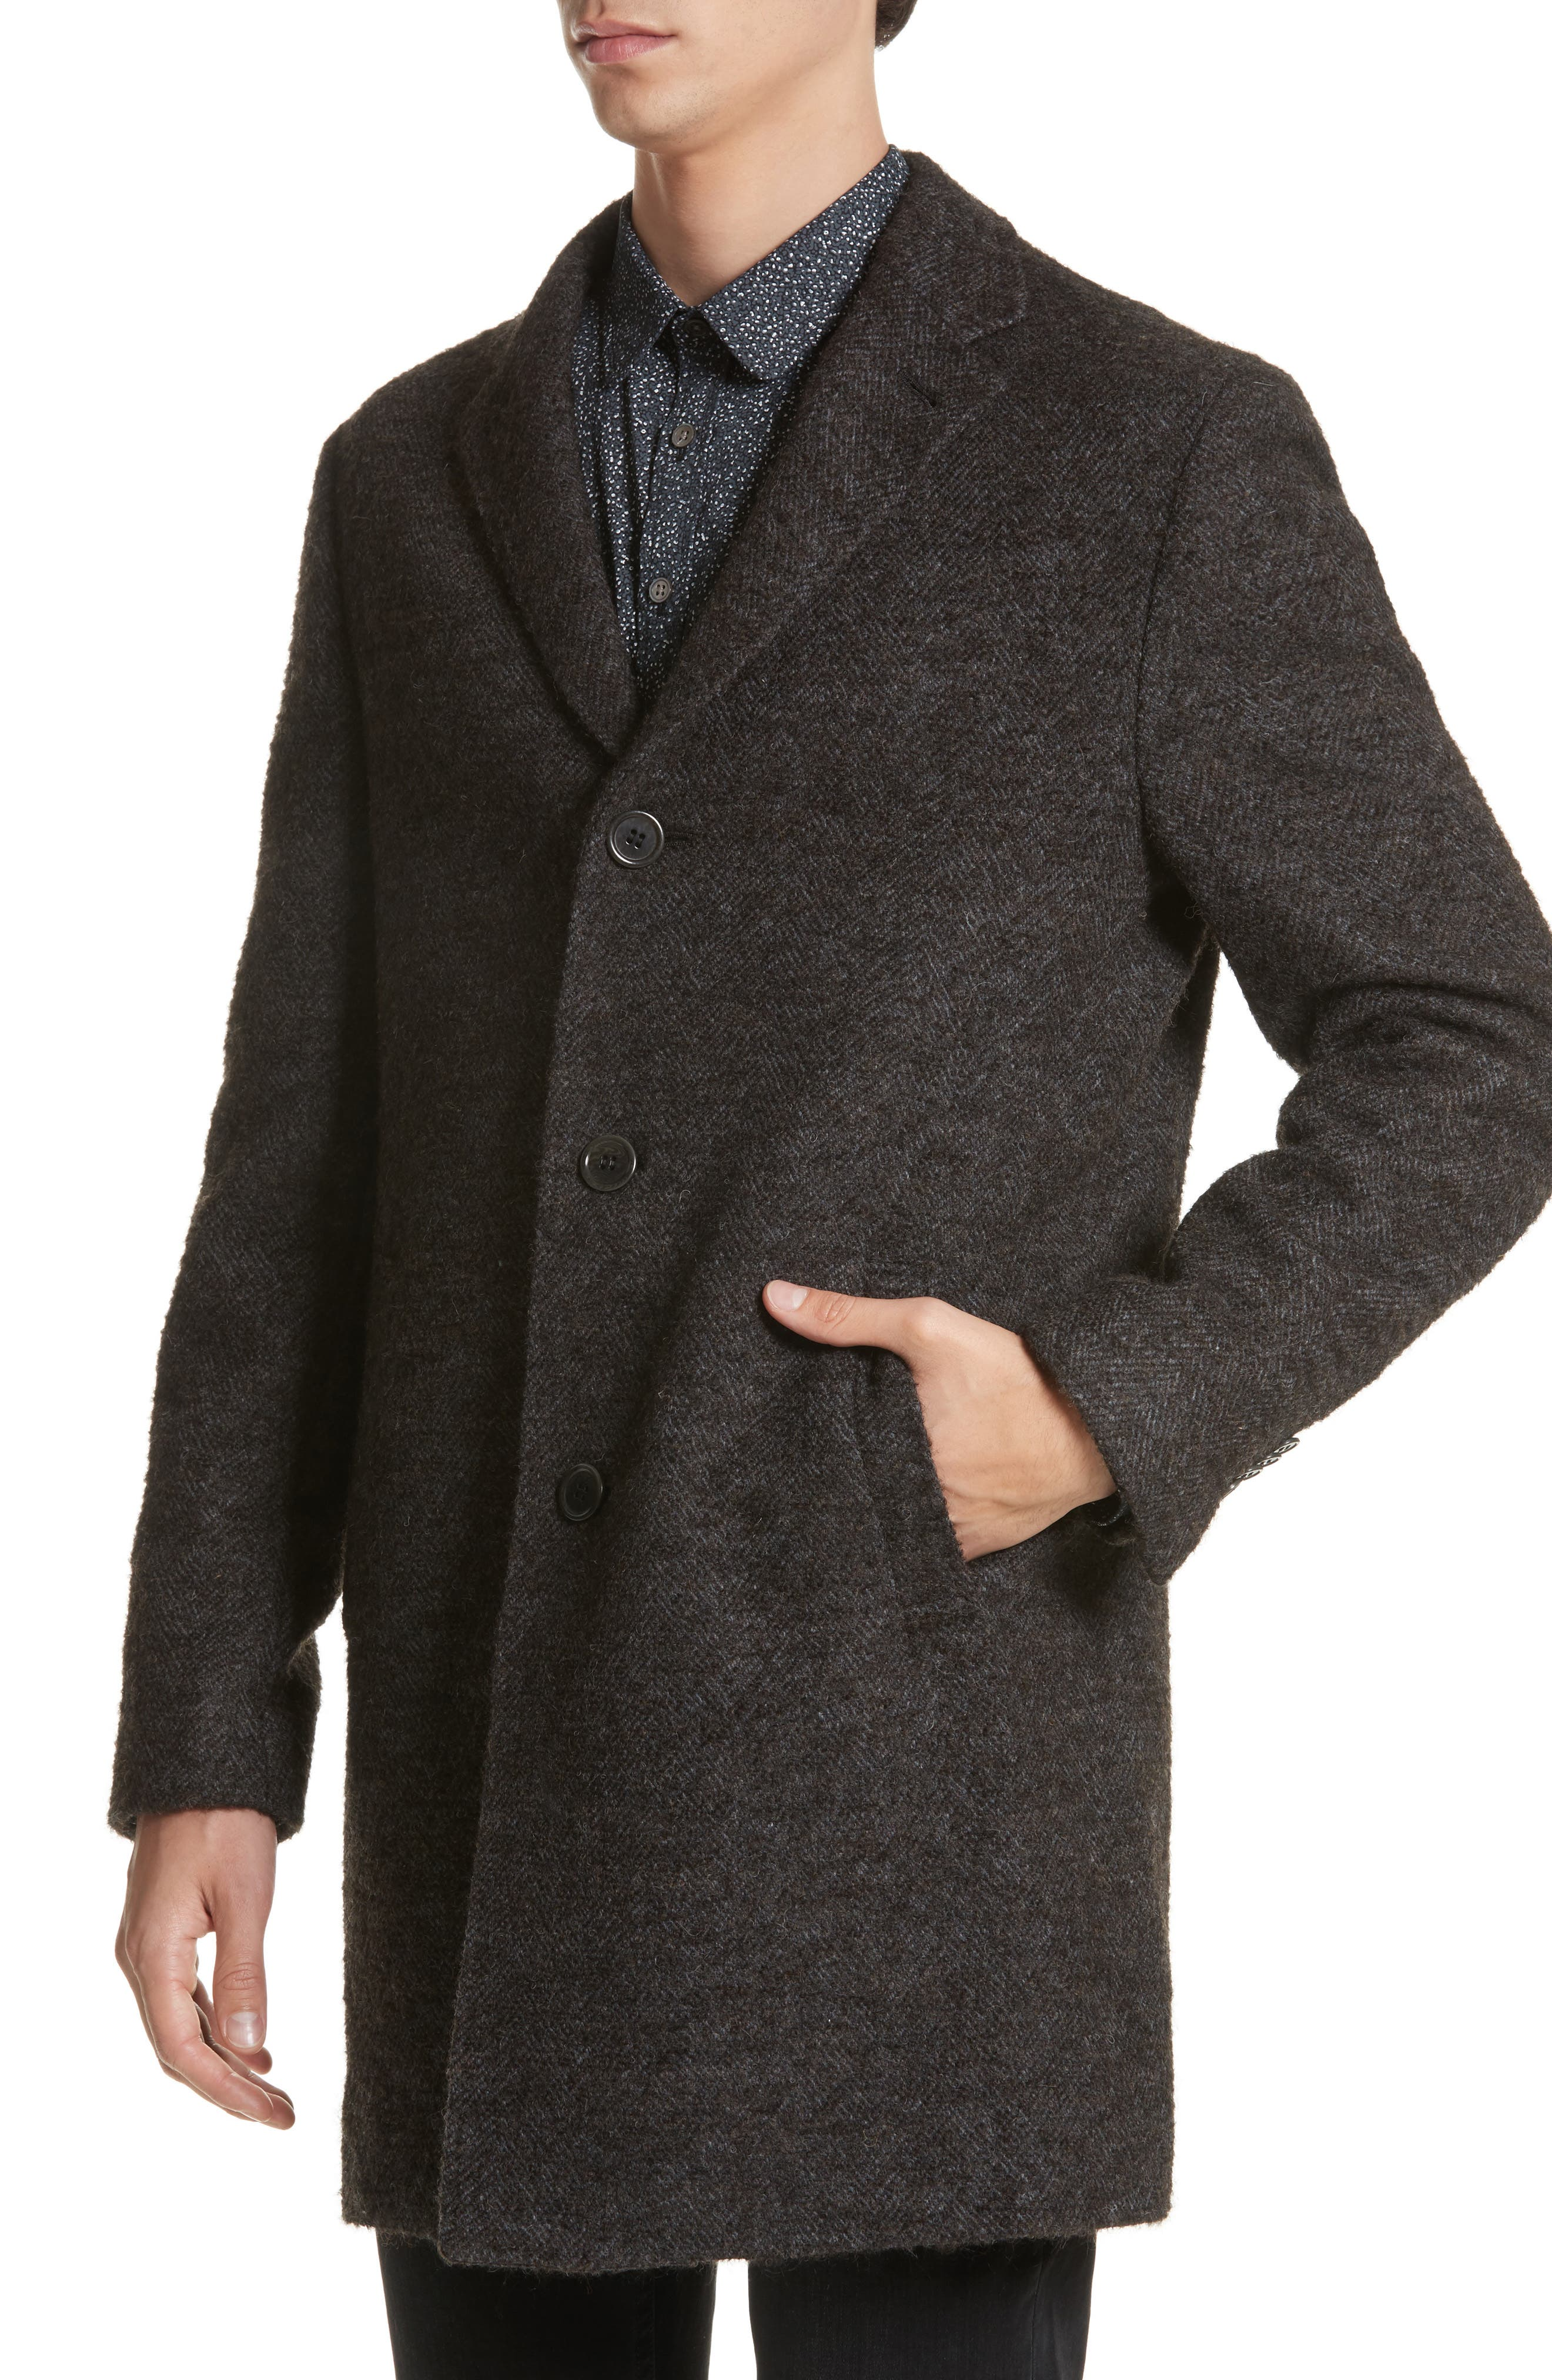 Walsh Wool Blend Topcoat,                             Alternate thumbnail 4, color,                             Brown/ White